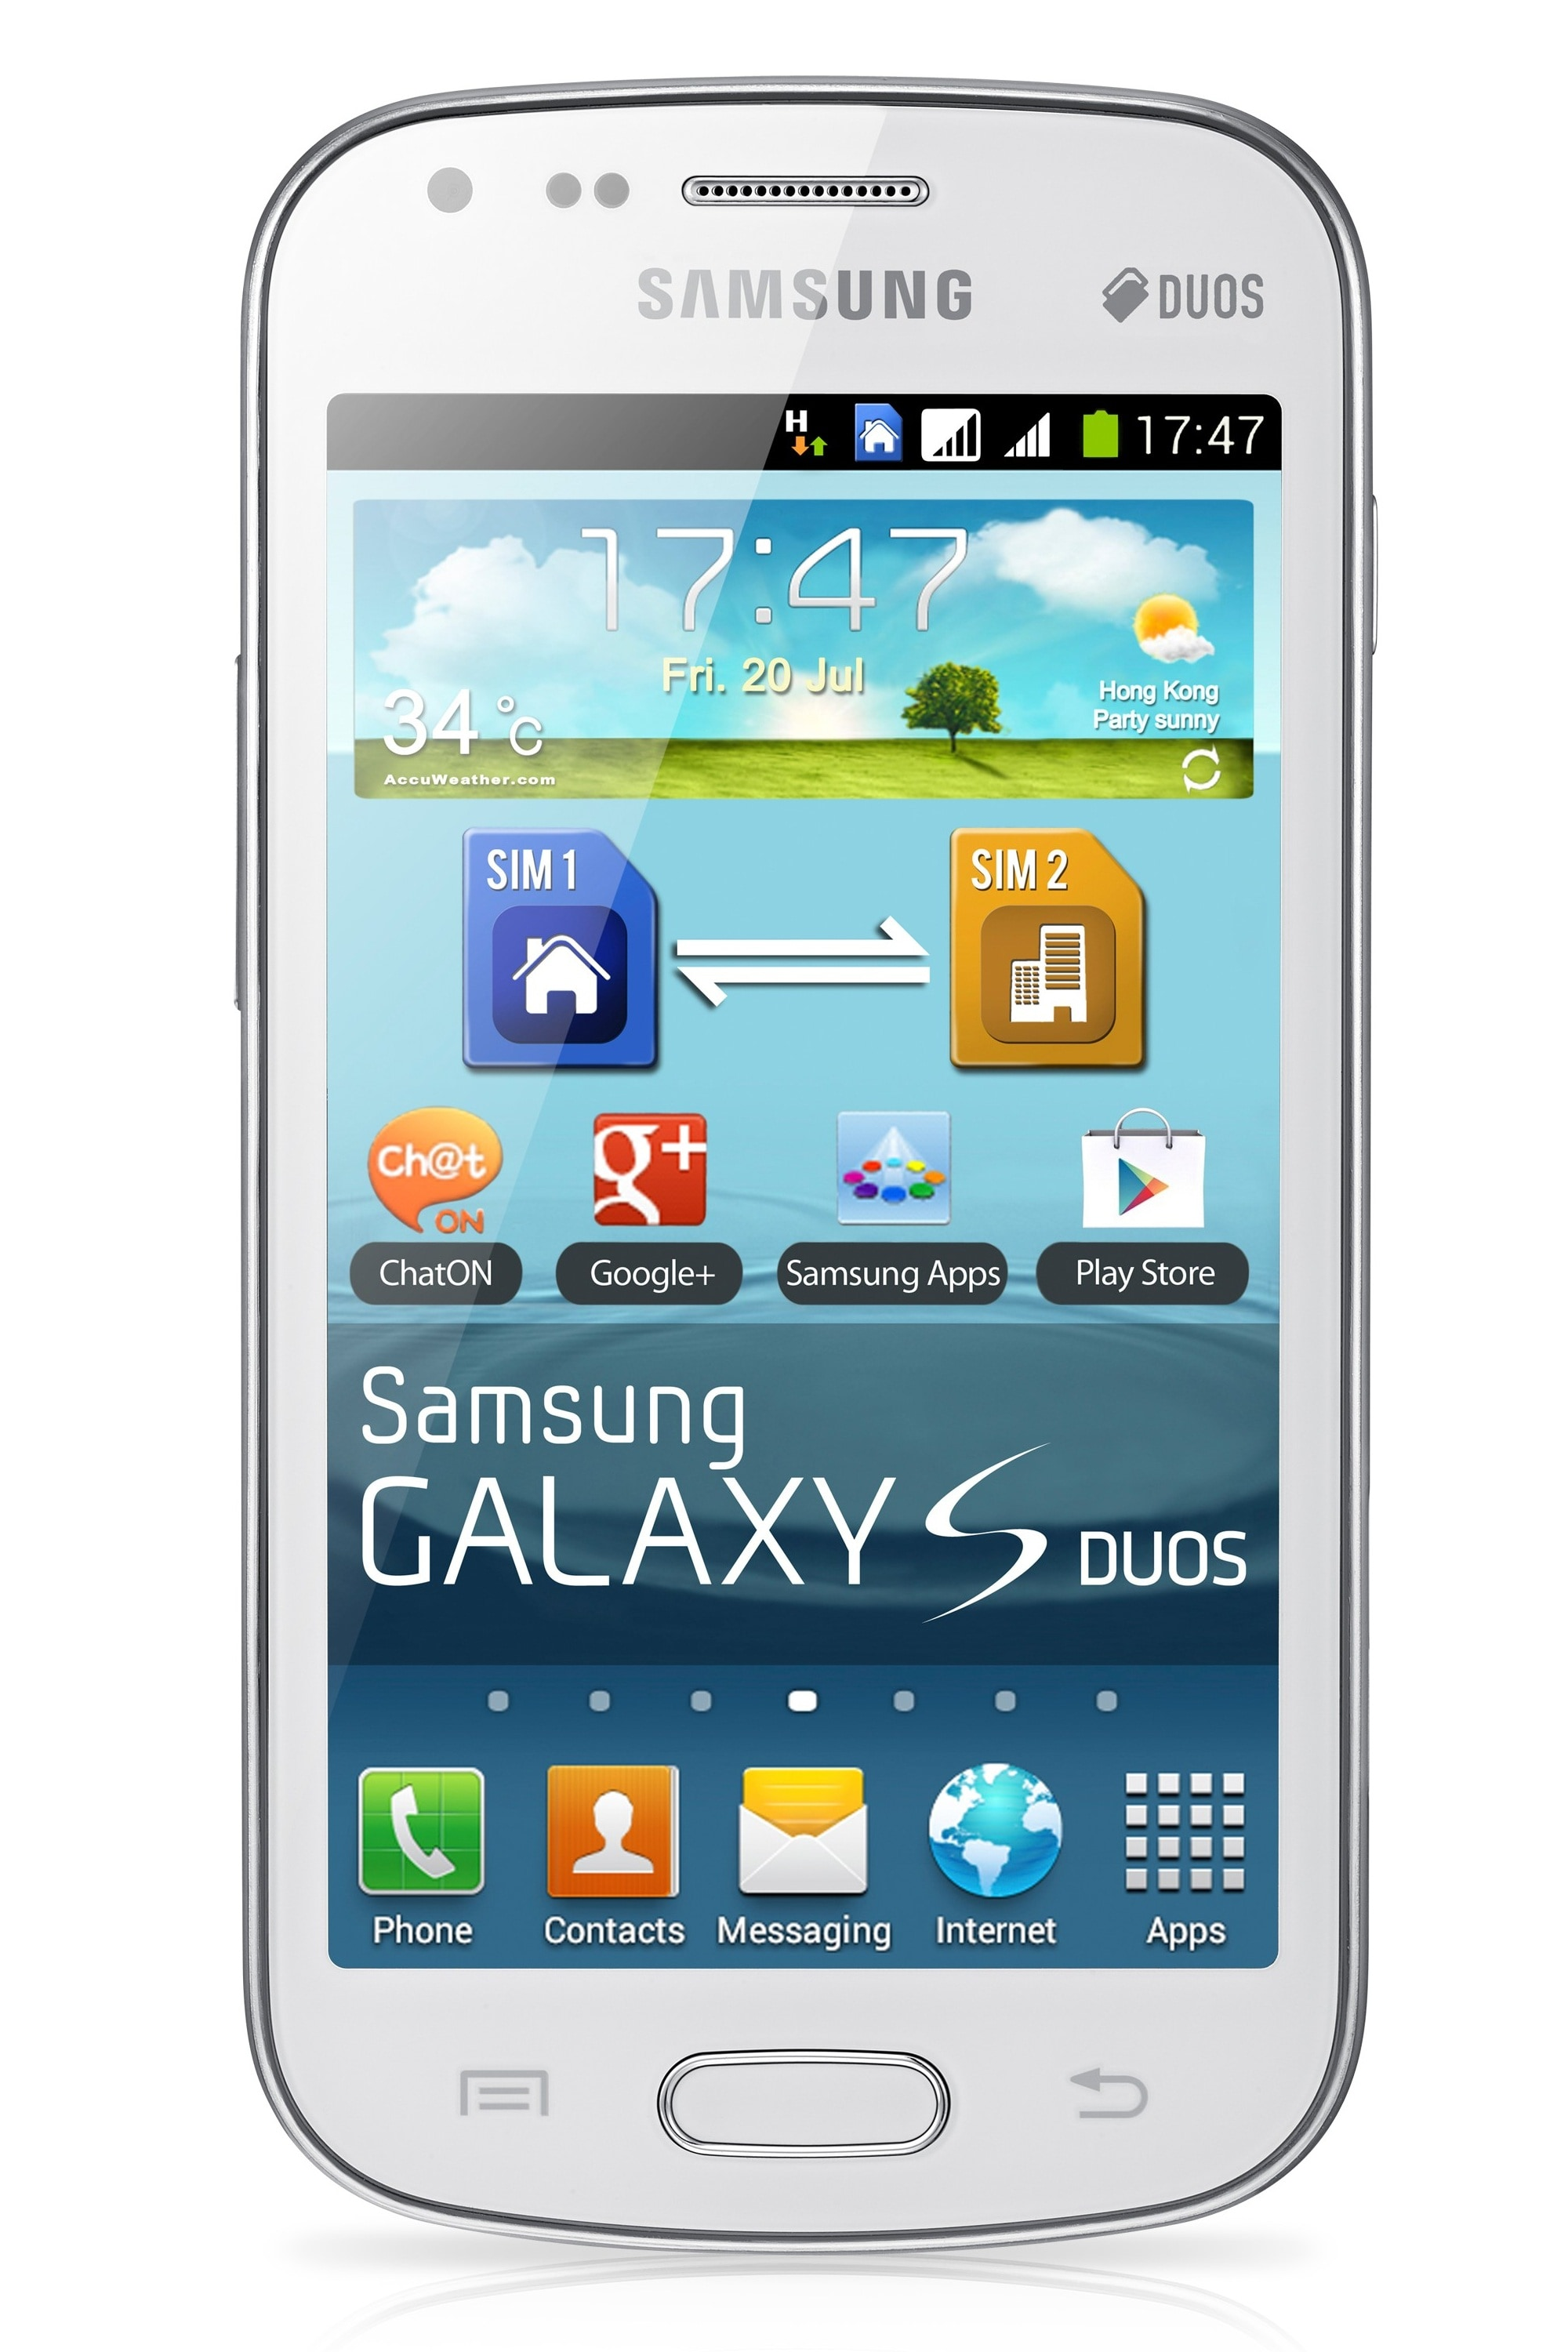 Samsung galaxy s duos s7562 gsm unlocked dual sim android cell phone white